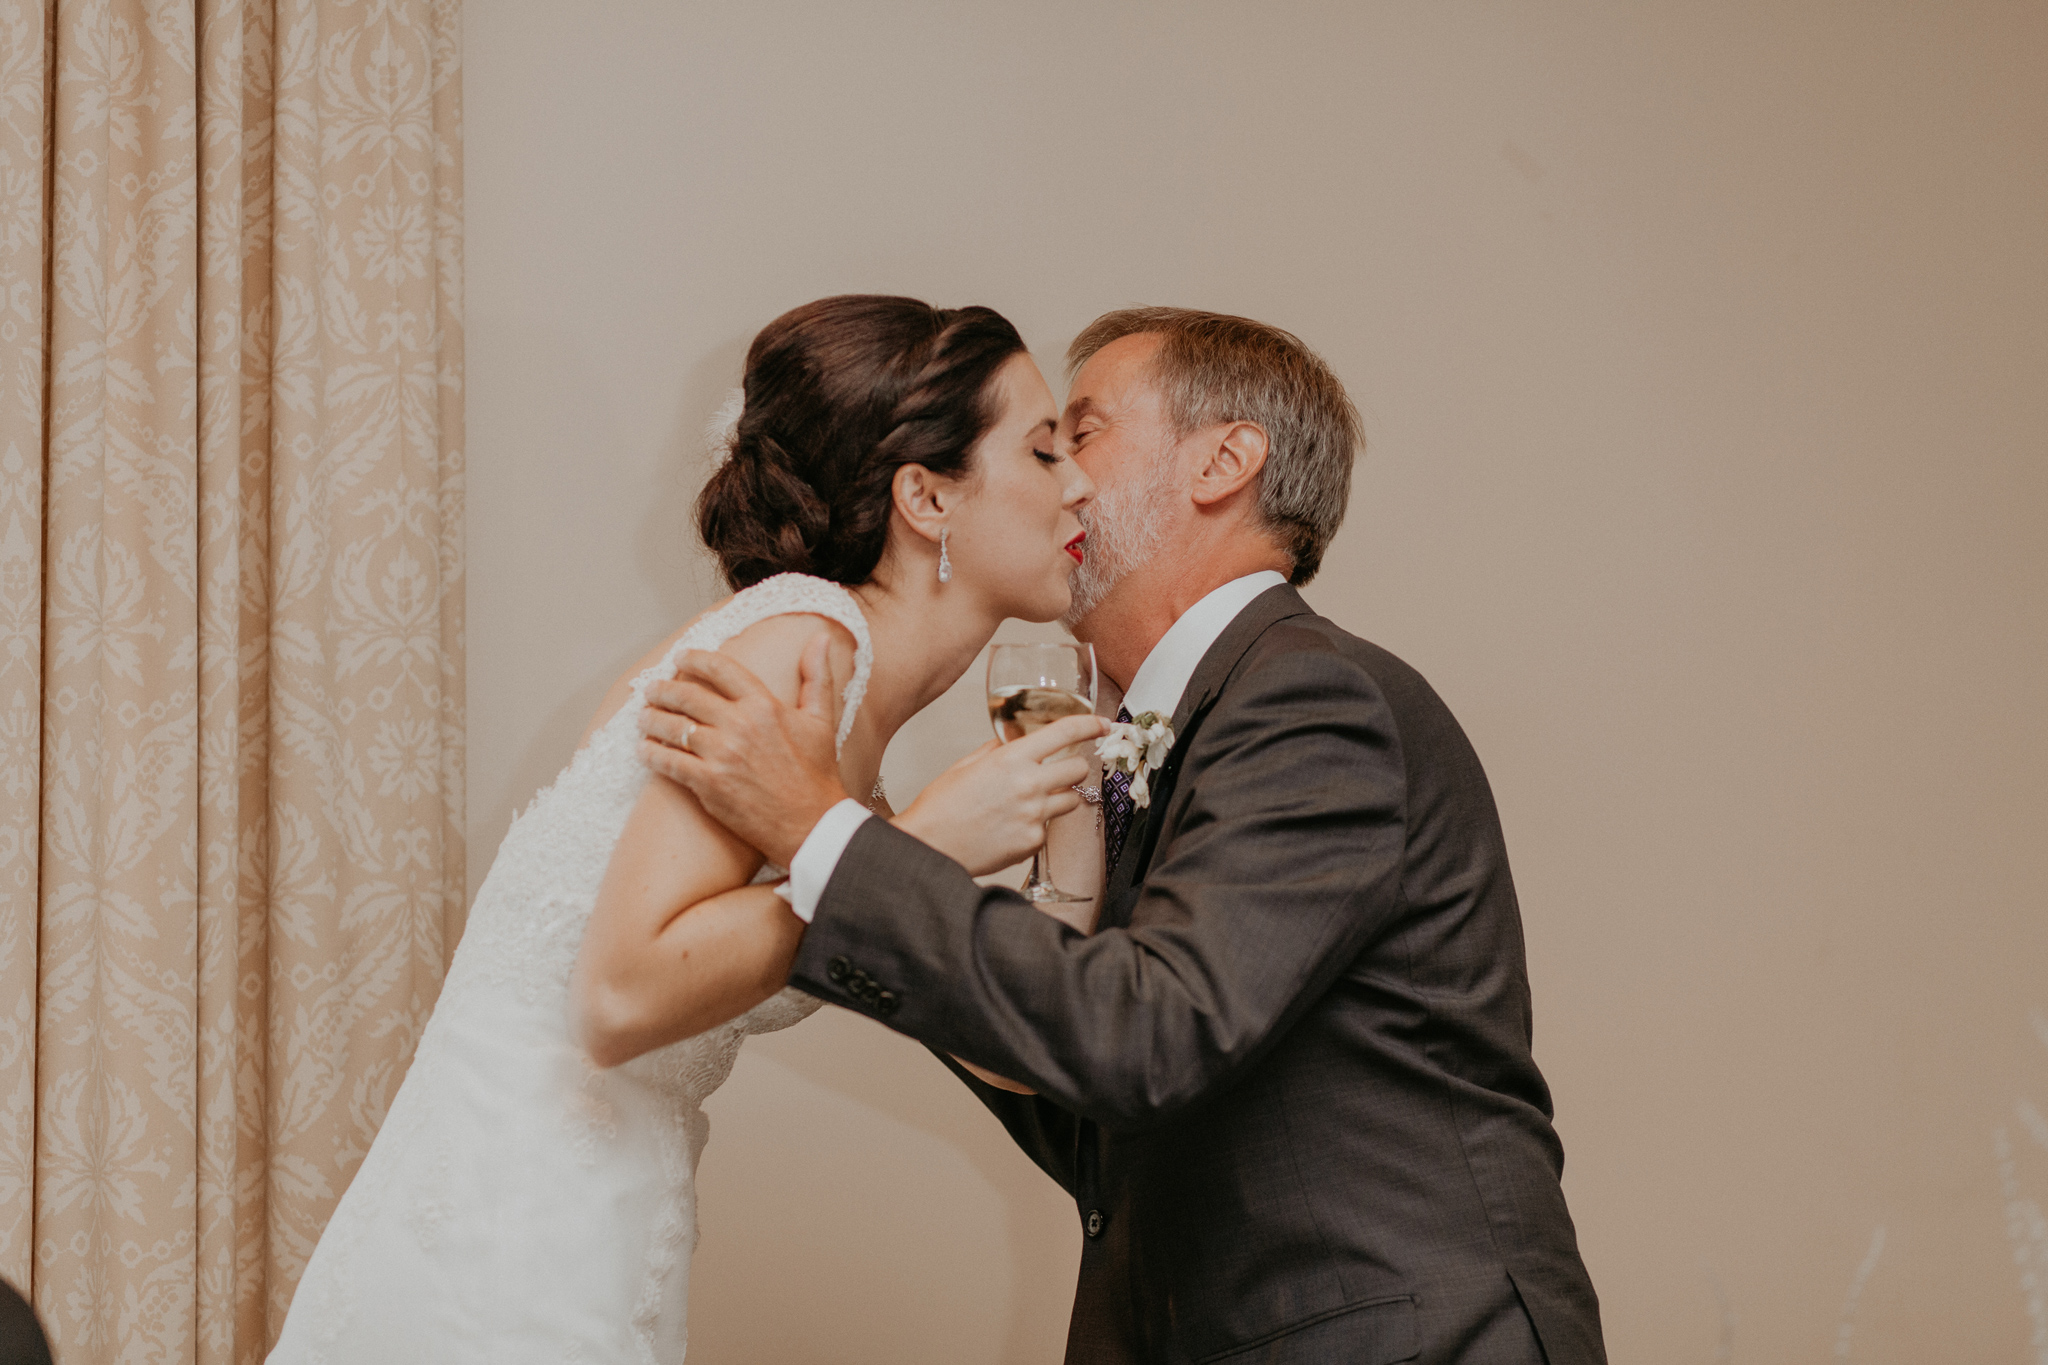 Bride kisses father after wedding speech in documentary wedding photo